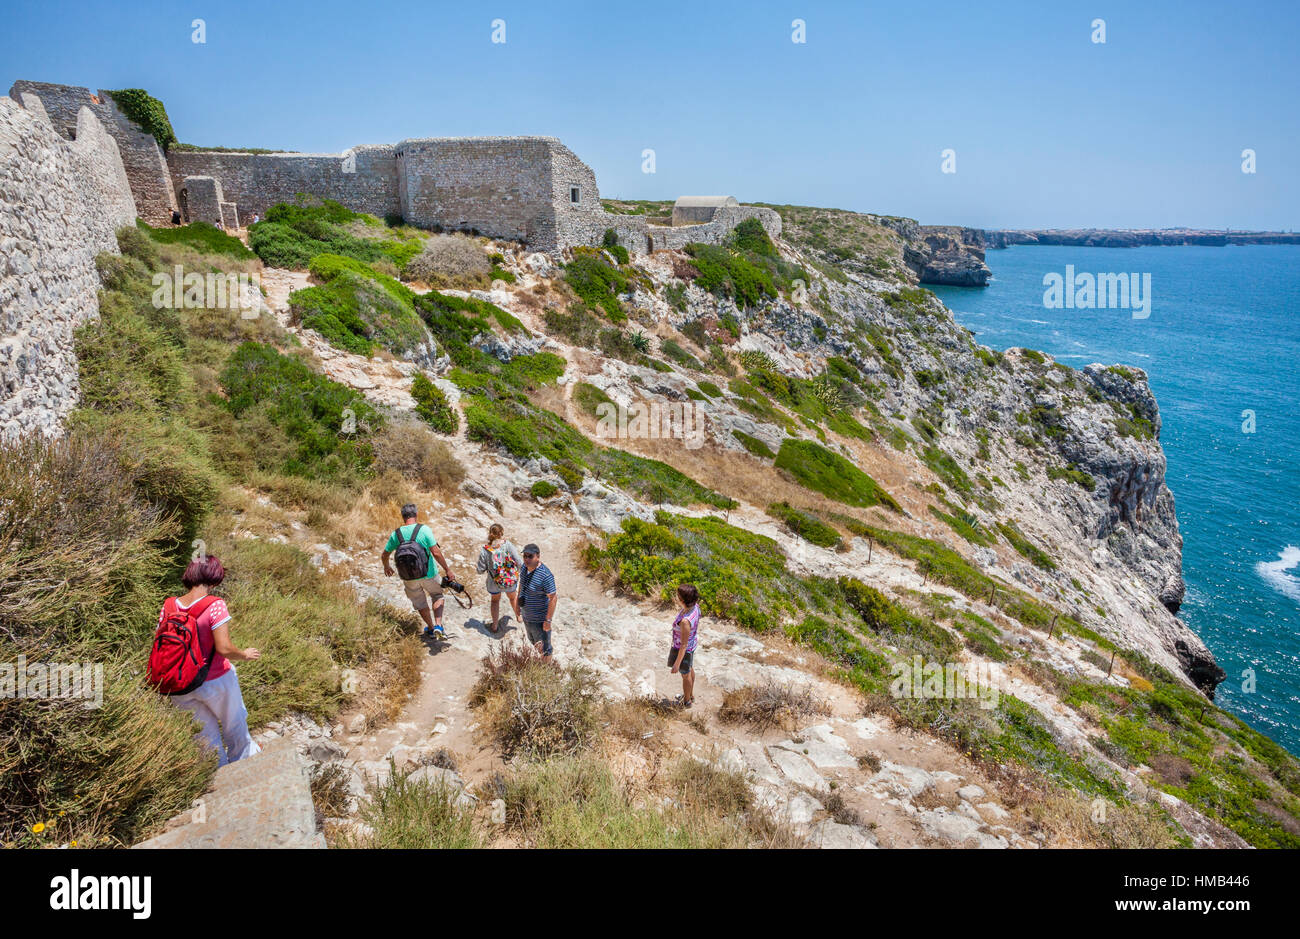 portugal algarve cabo de sao vicente ruins of the fort of san stock photo 133010422 alamy. Black Bedroom Furniture Sets. Home Design Ideas